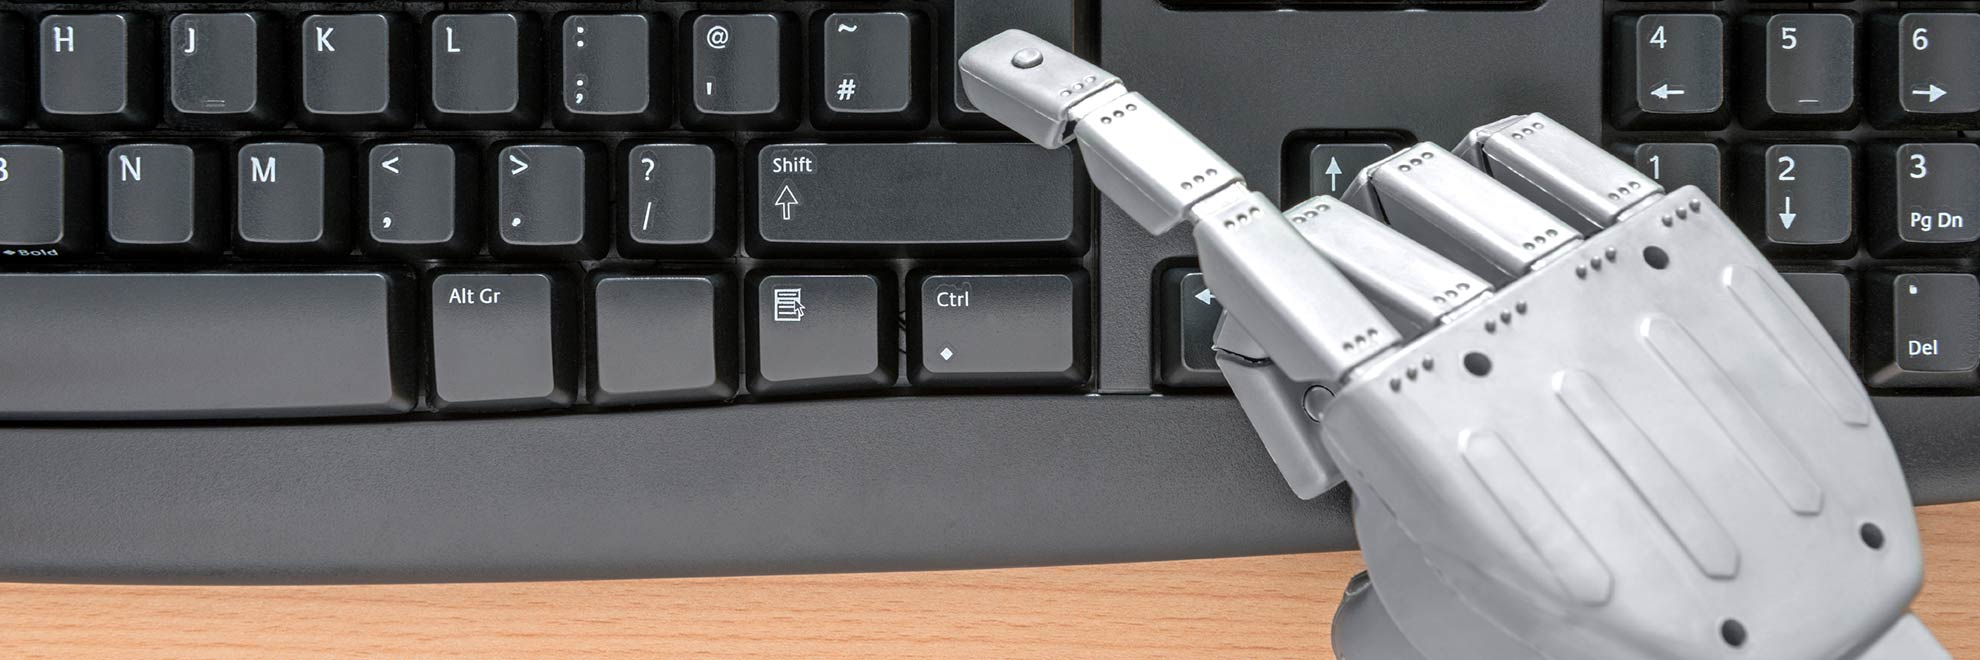 robot hand using keyboard